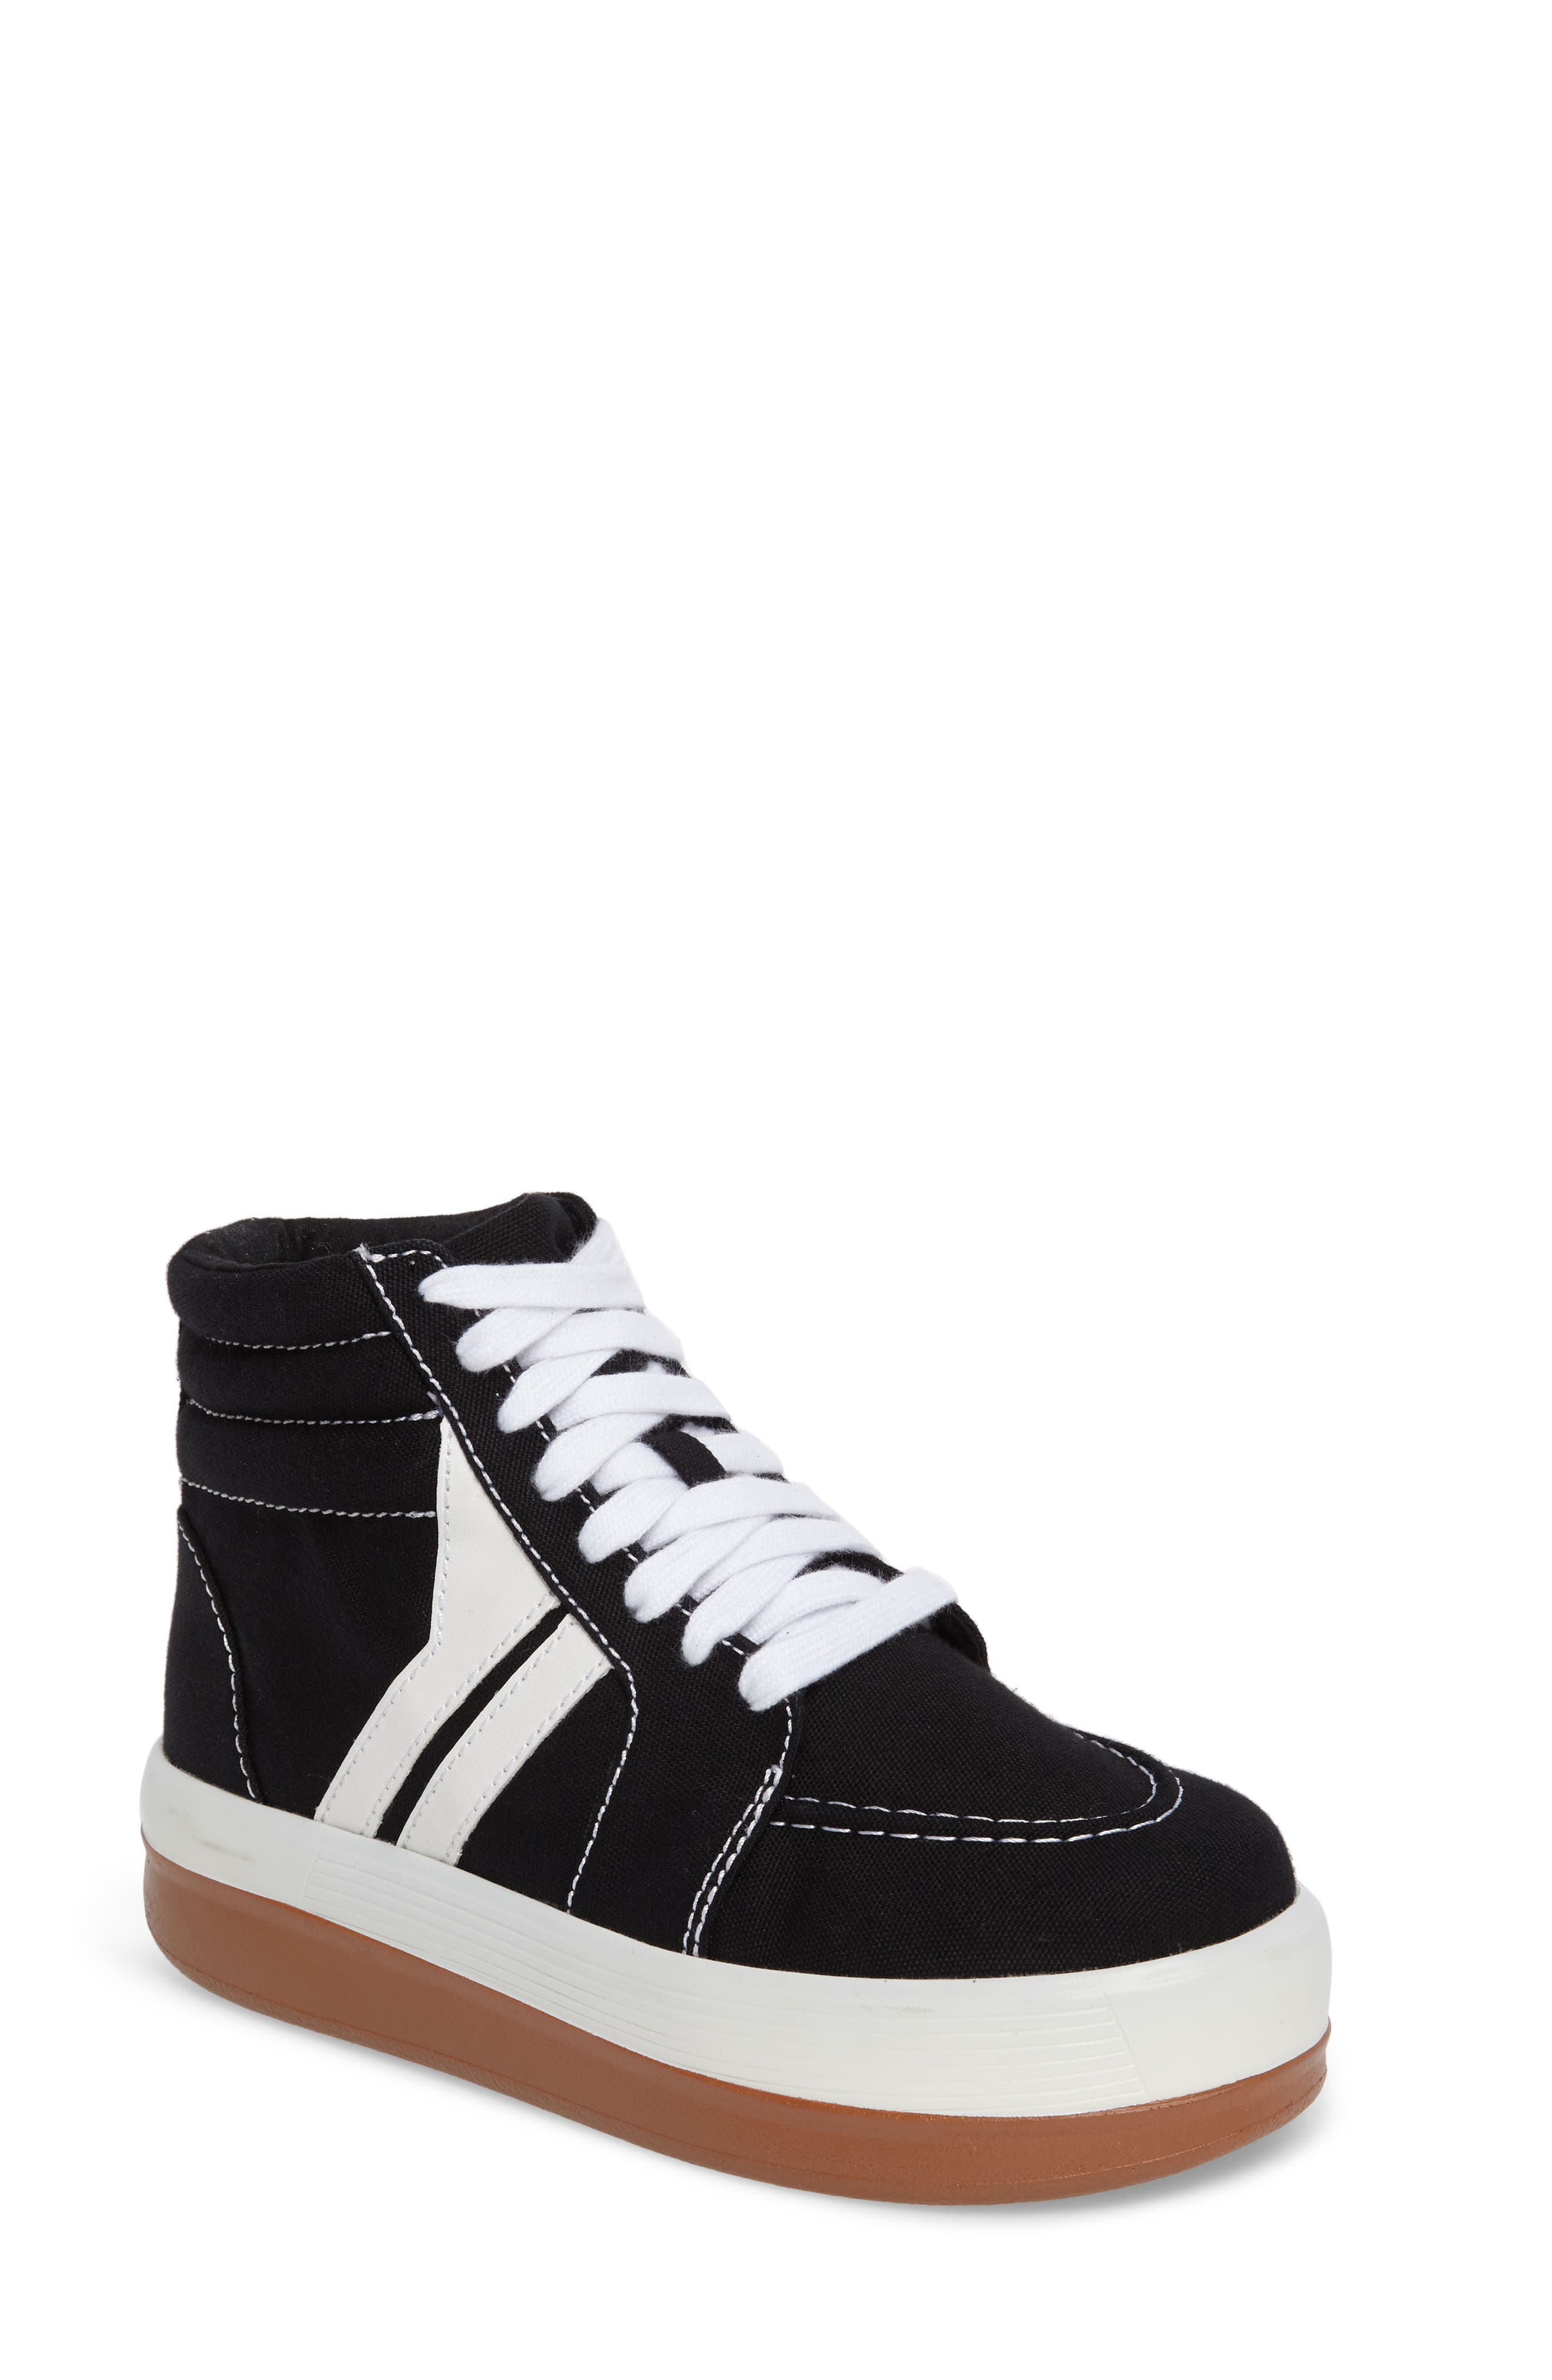 Grind High Top Sneaker,                             Main thumbnail 1, color,                             001